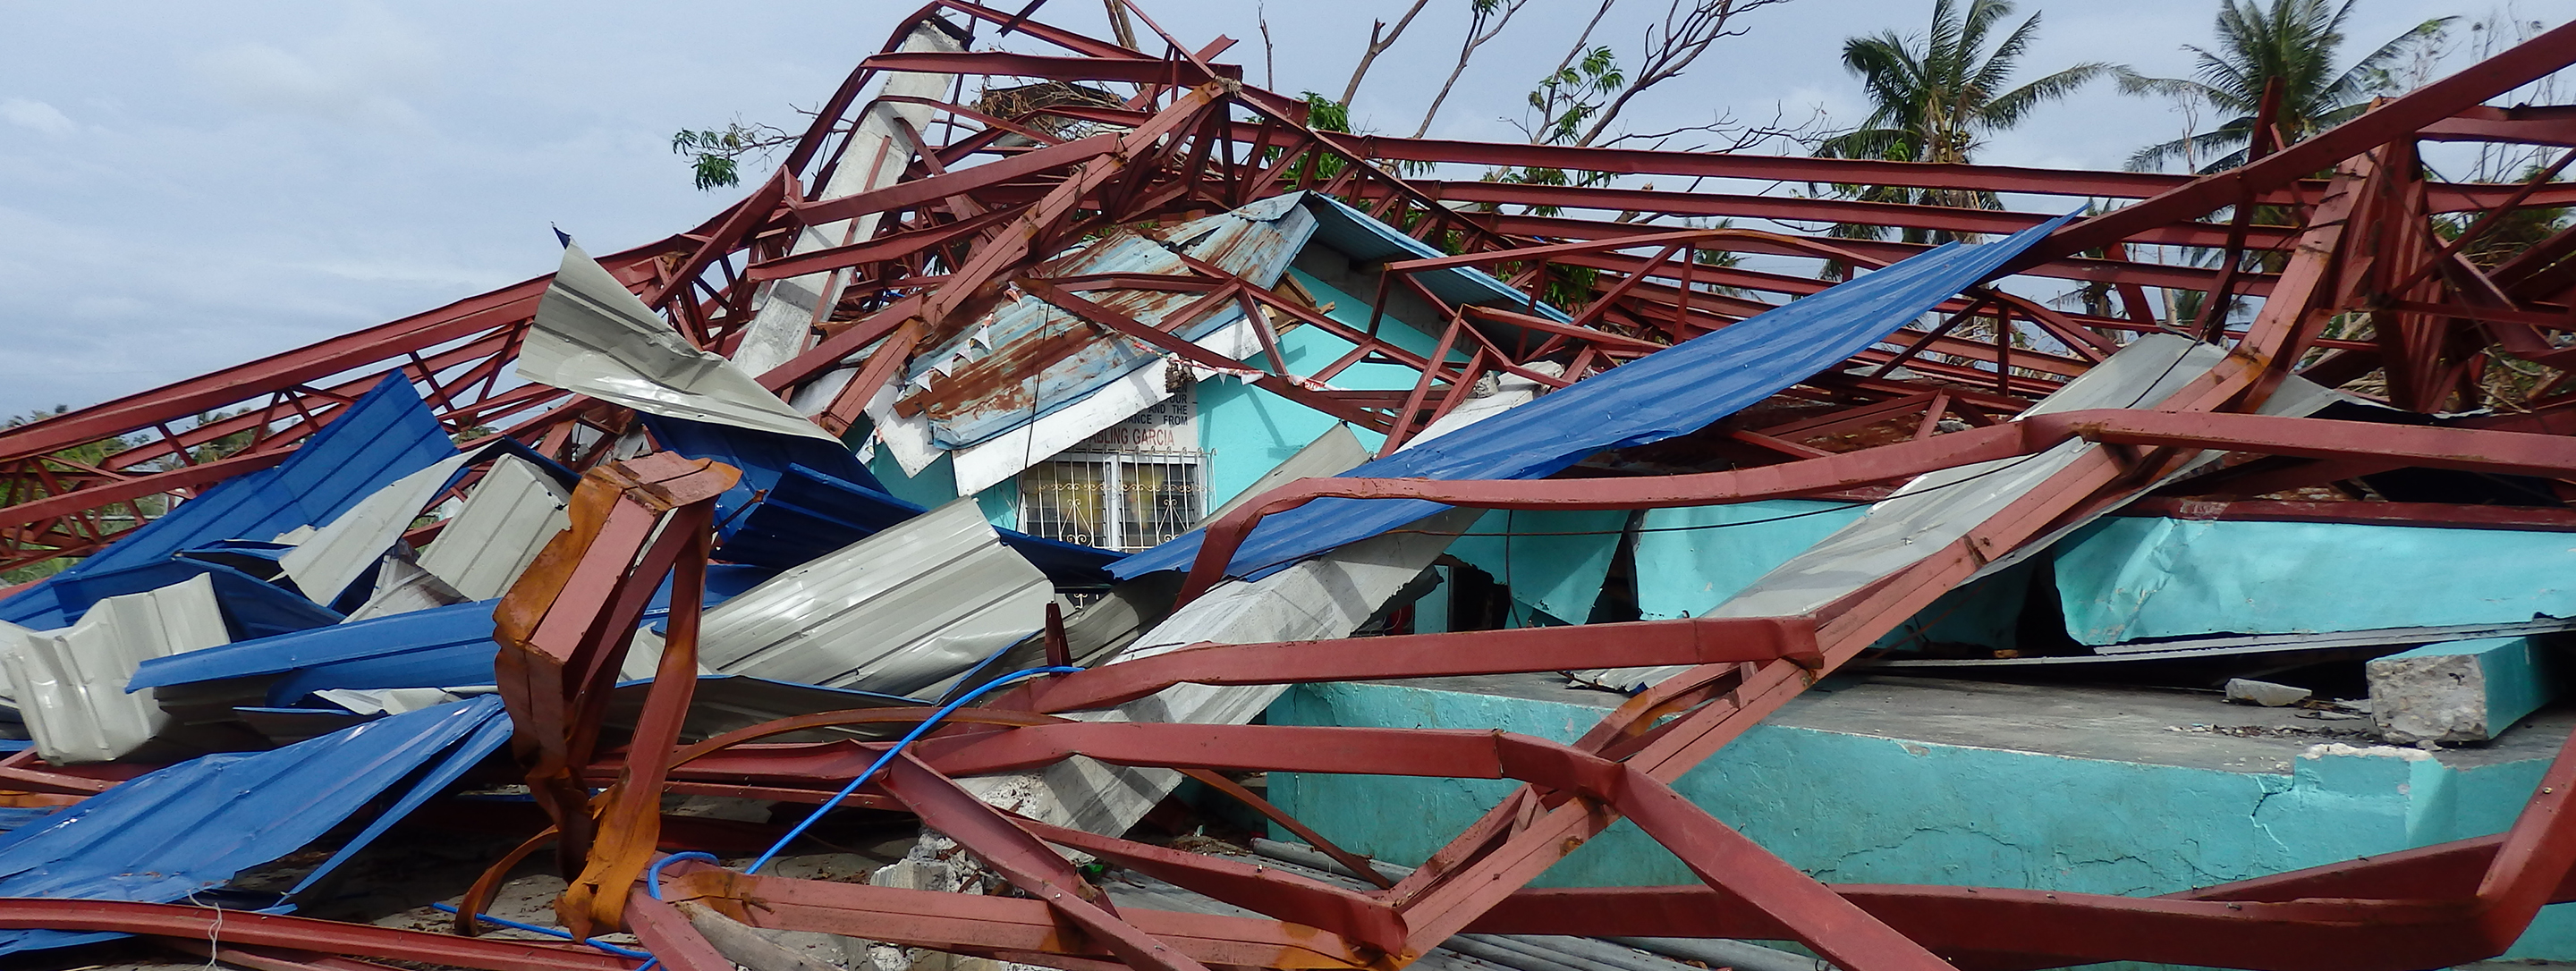 destruction at don pedro barangay health station and day care center